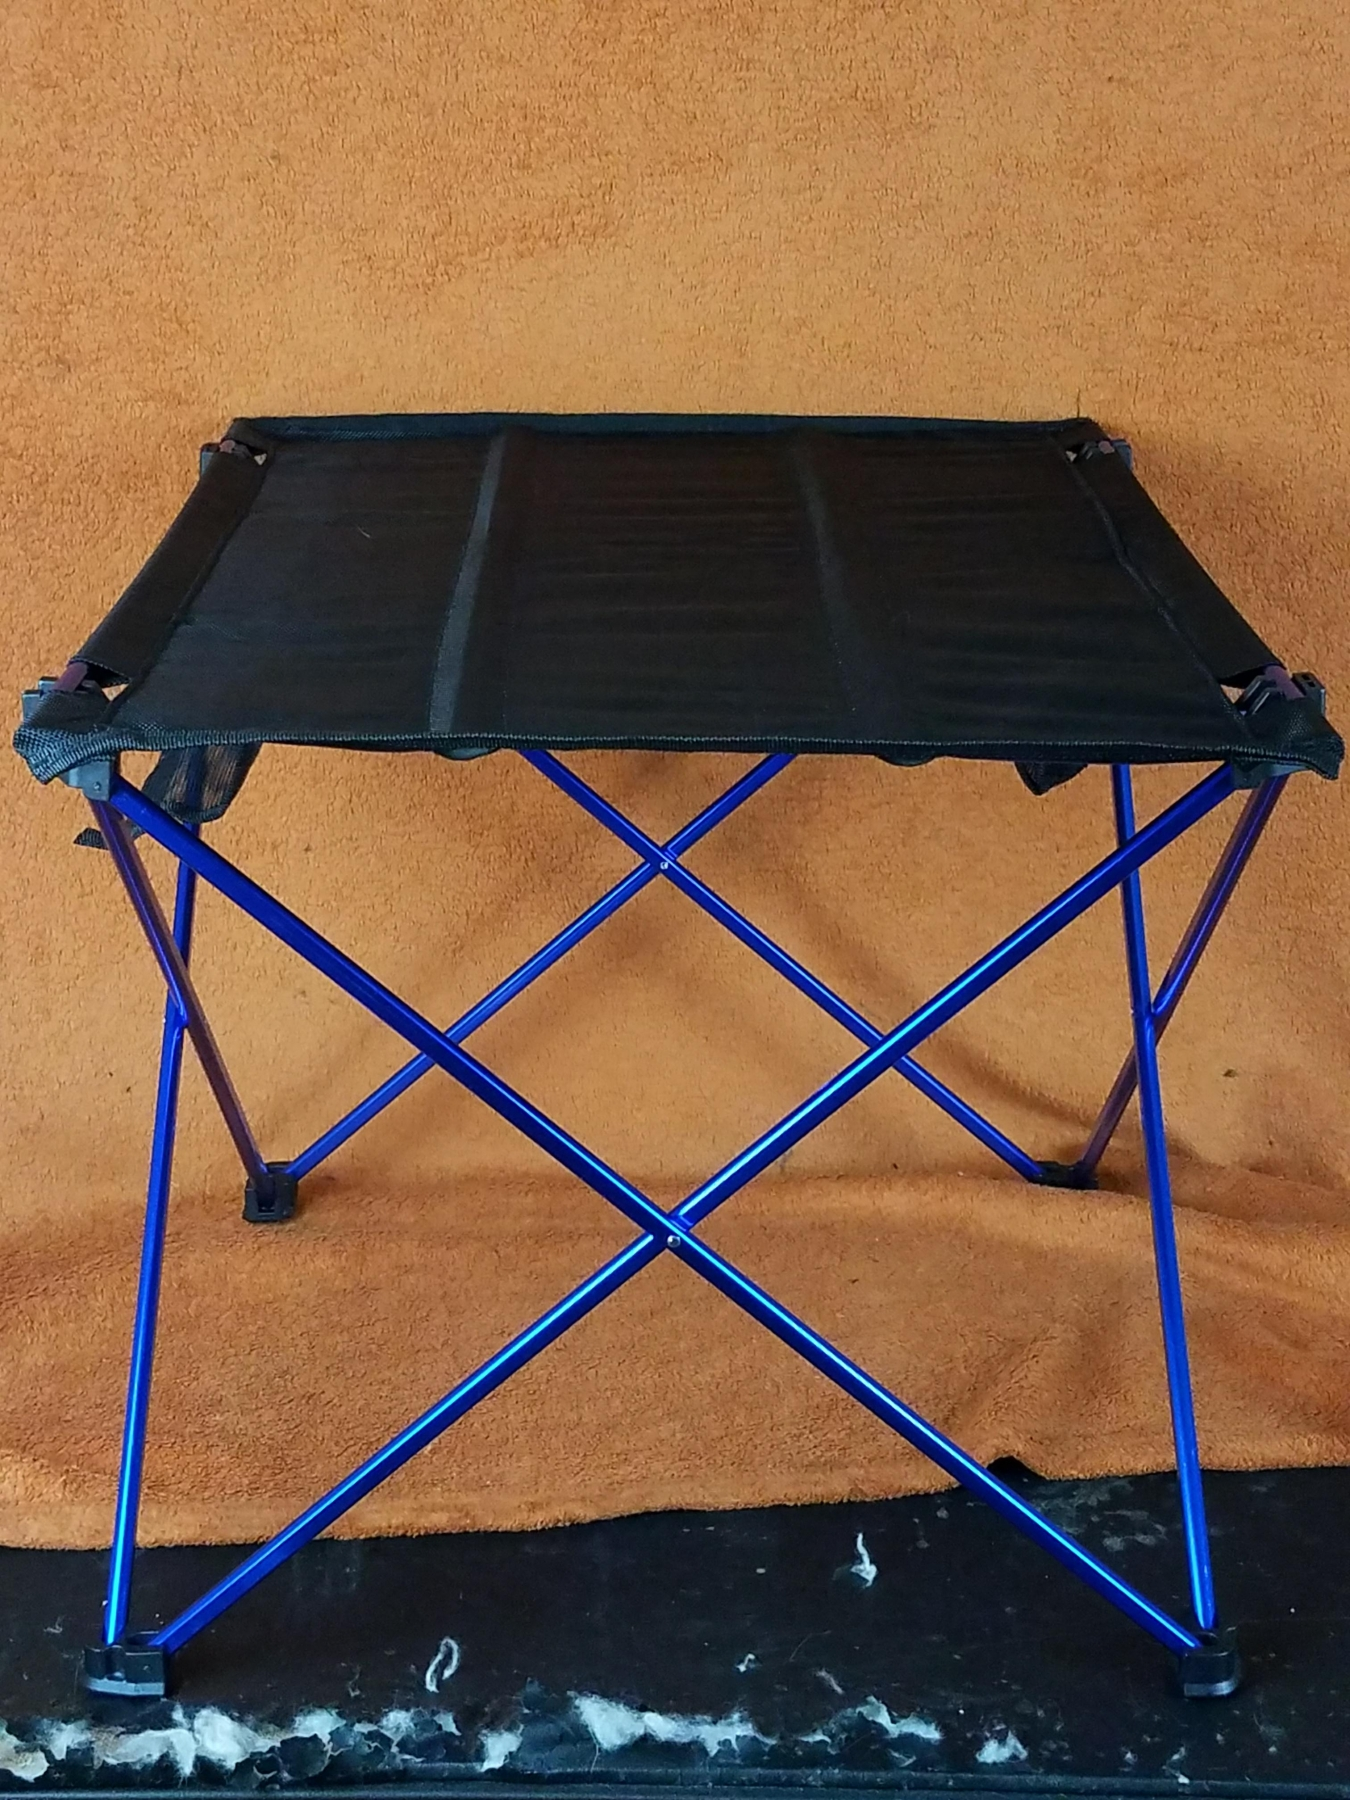 Very lightweight & portable table, comes with it's own storage bag, takes less than one minute to set up, easily folds up when done, high quality!